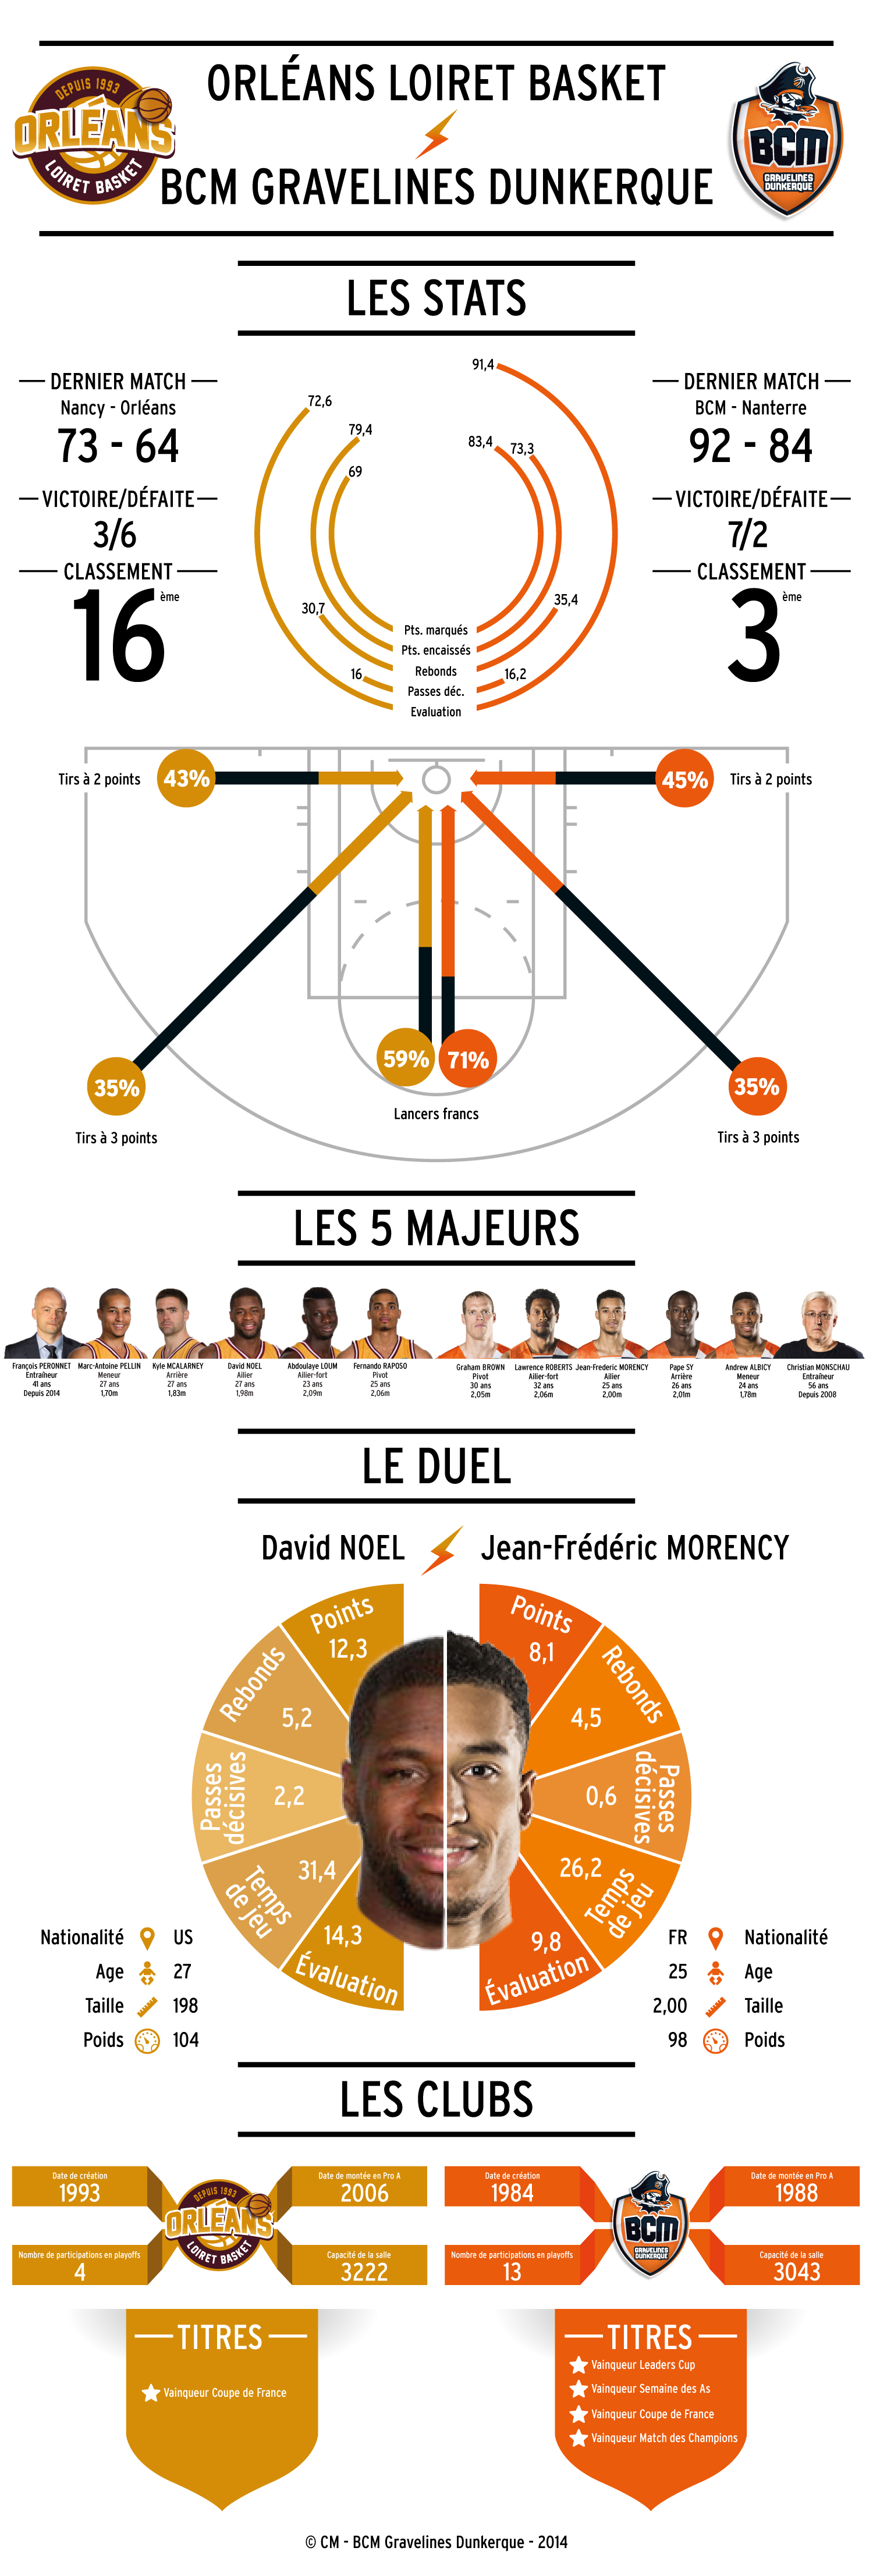 141129_INFOGRAPHIE_ORLEANS